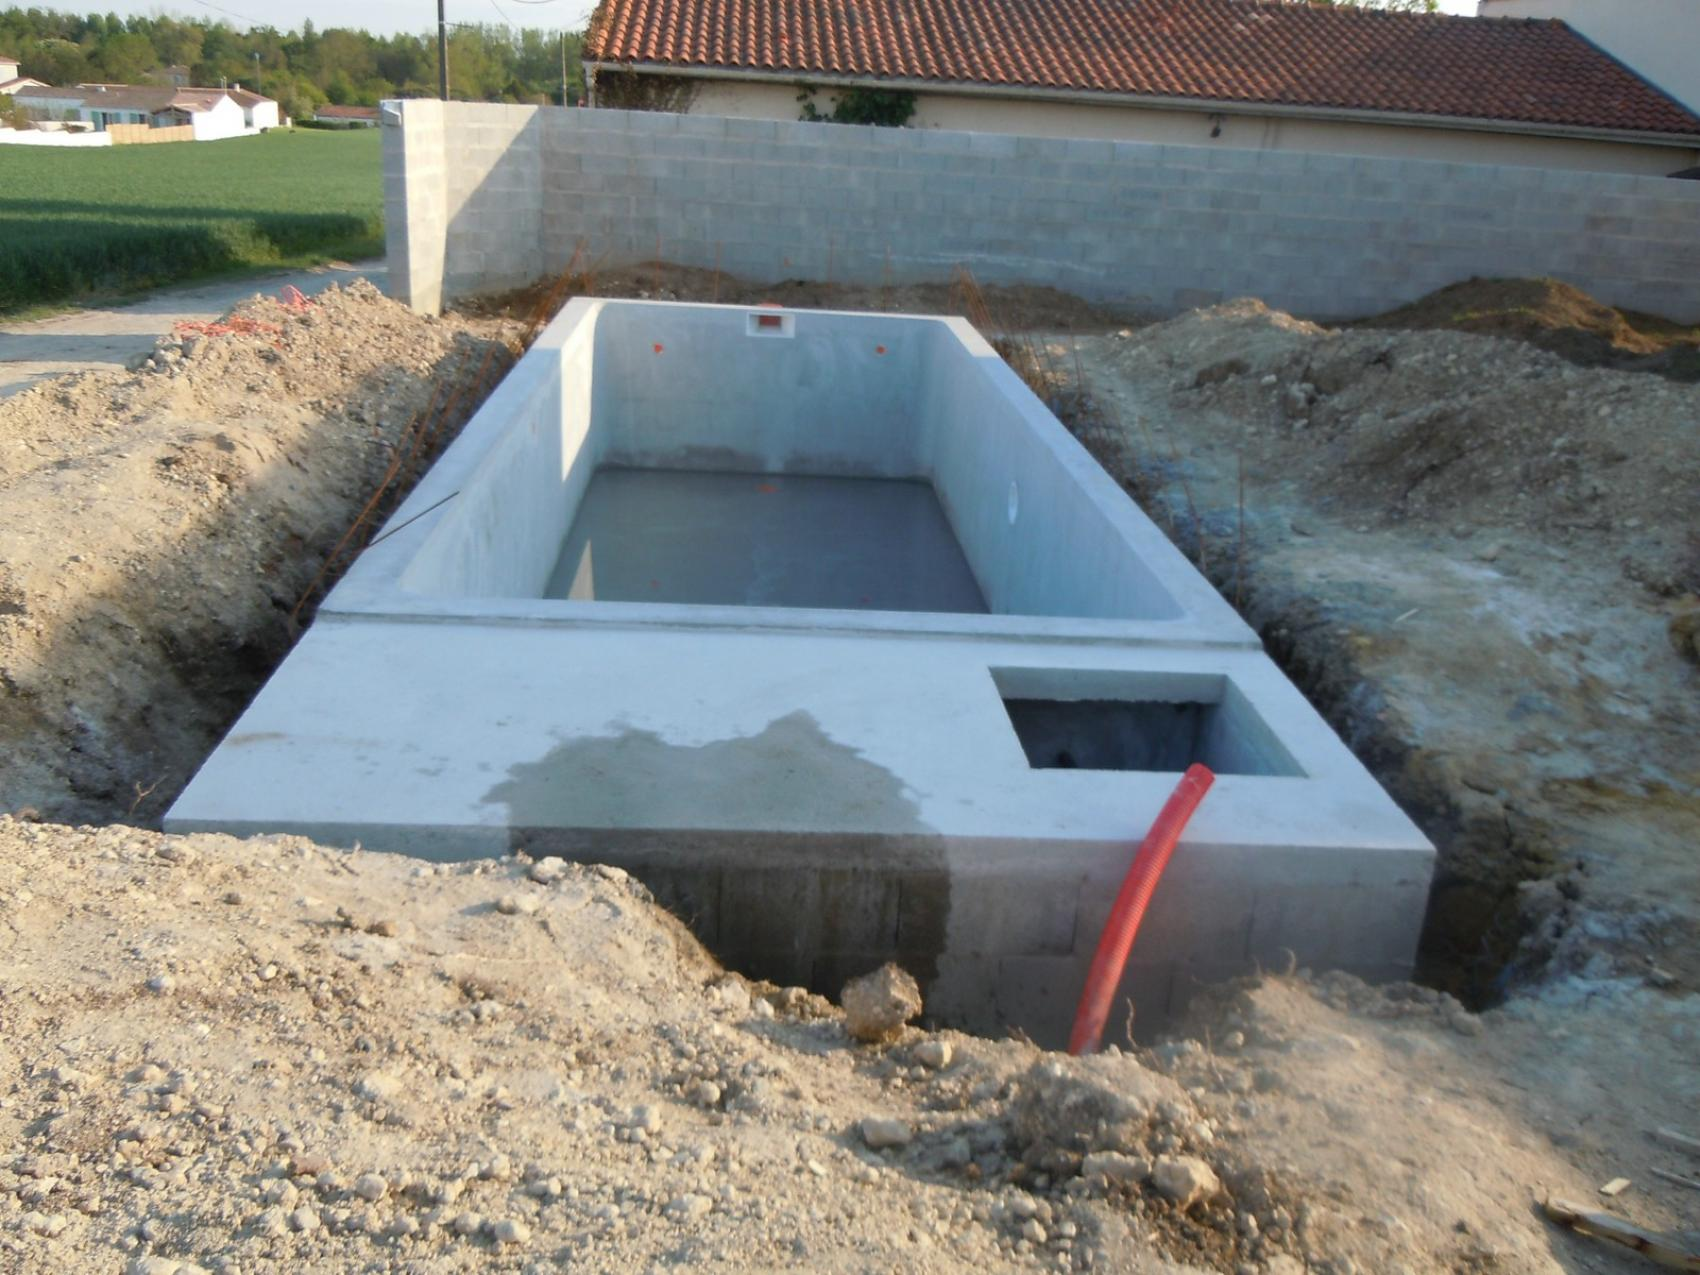 Aydin construction sp cialiste ma onnerie piscines for Specialiste piscine